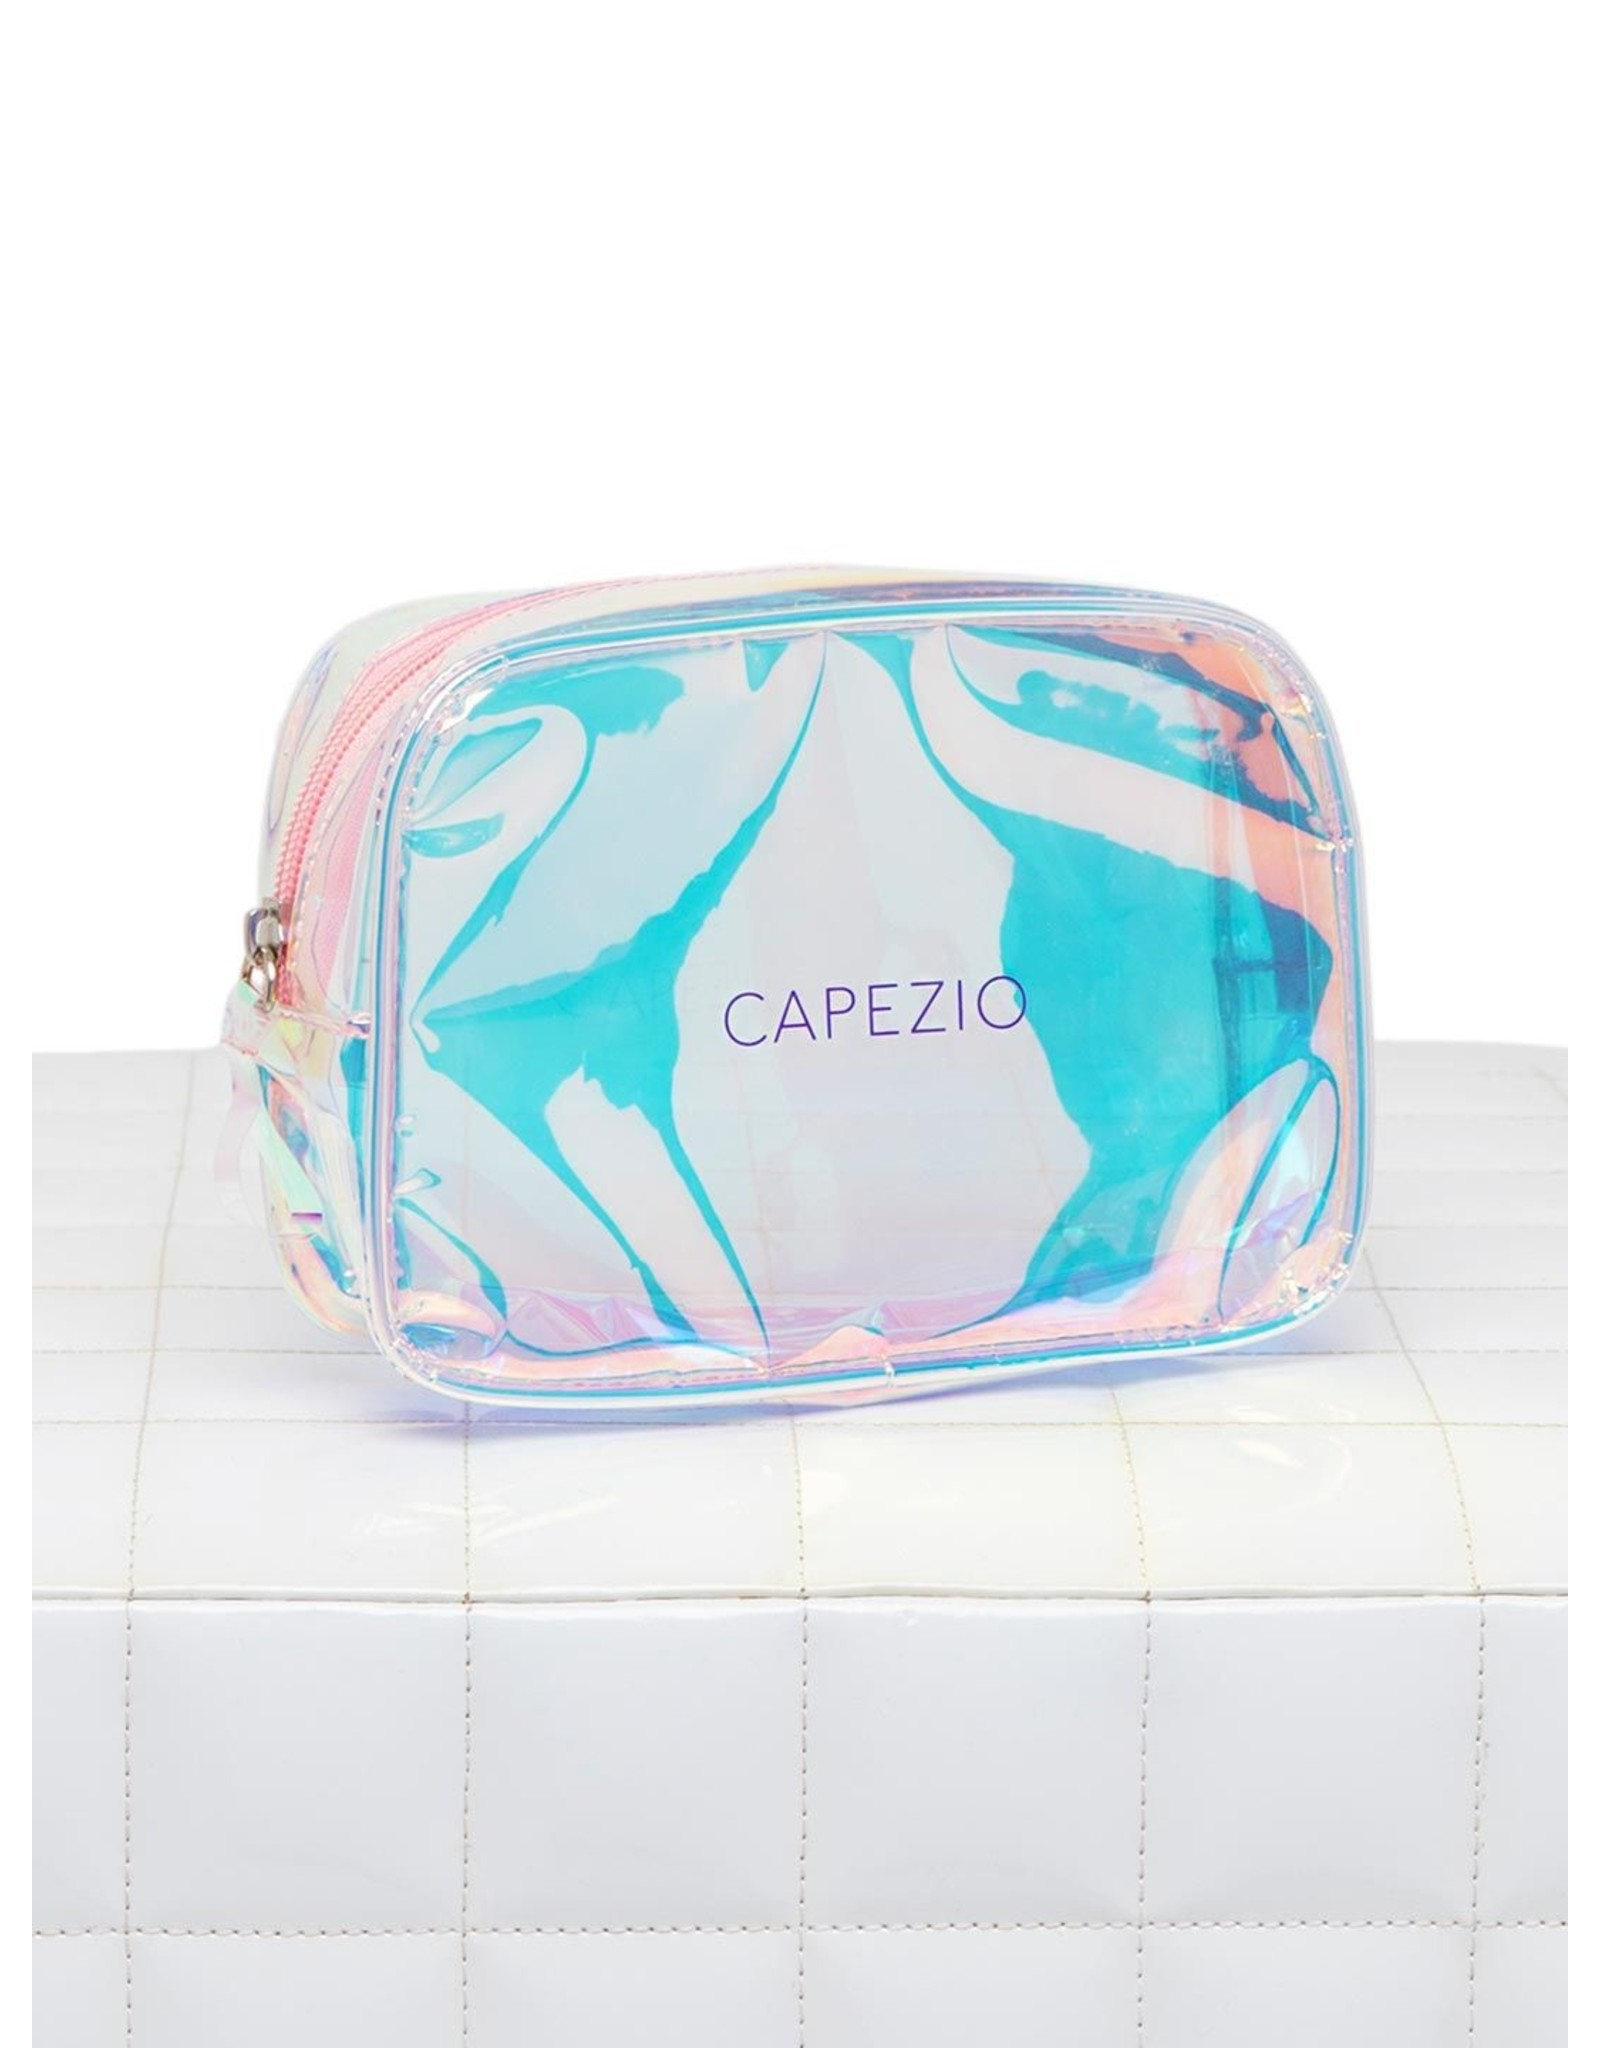 CAPEZIO HOLOGRAPHIC MAKEUP BAG